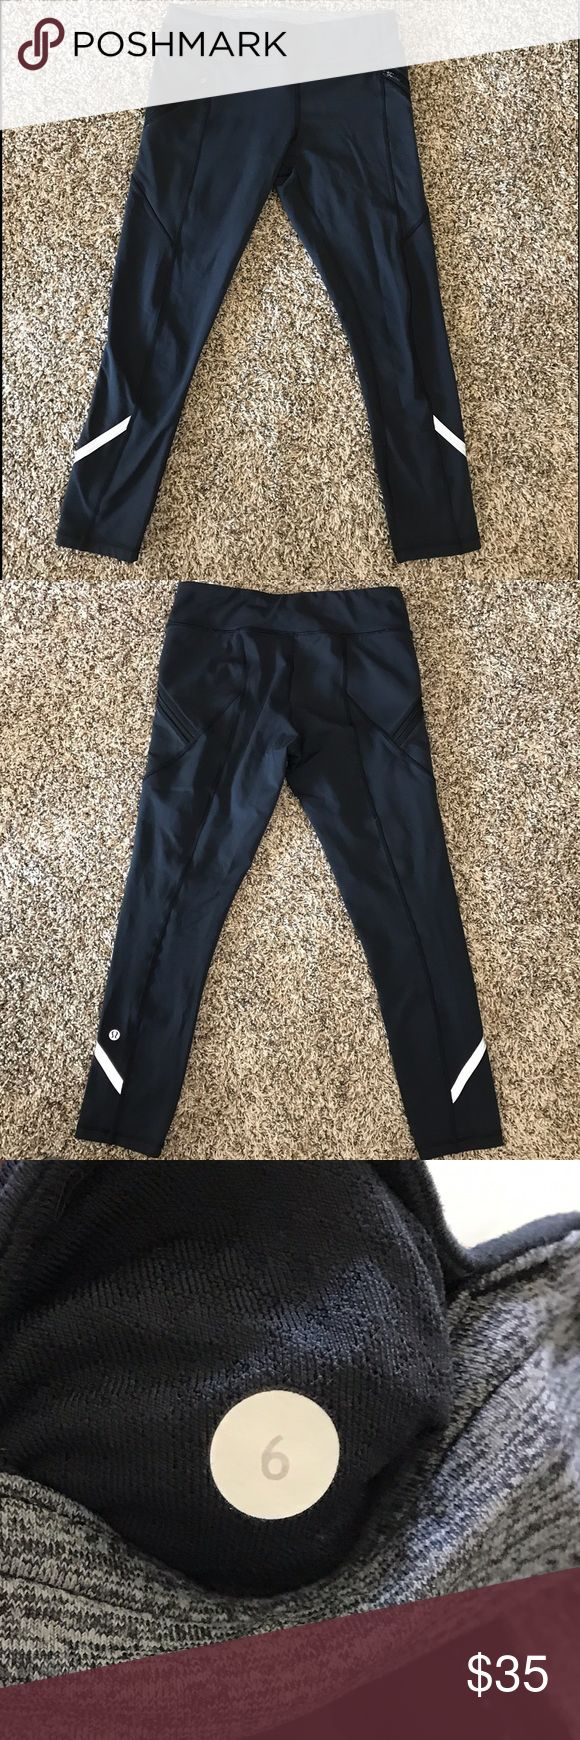 Lululemon Black Zip Pocket 7/8 Length Leggings In excellent condition; no holes, stains, or flaws▪️Mid-rise▪️key pocket on rear waist band▪️Two large pockets with zipper closure on sides▪️Fabric content unknown, tag has been ripped▪️ lululemon athletica Pants Leggings